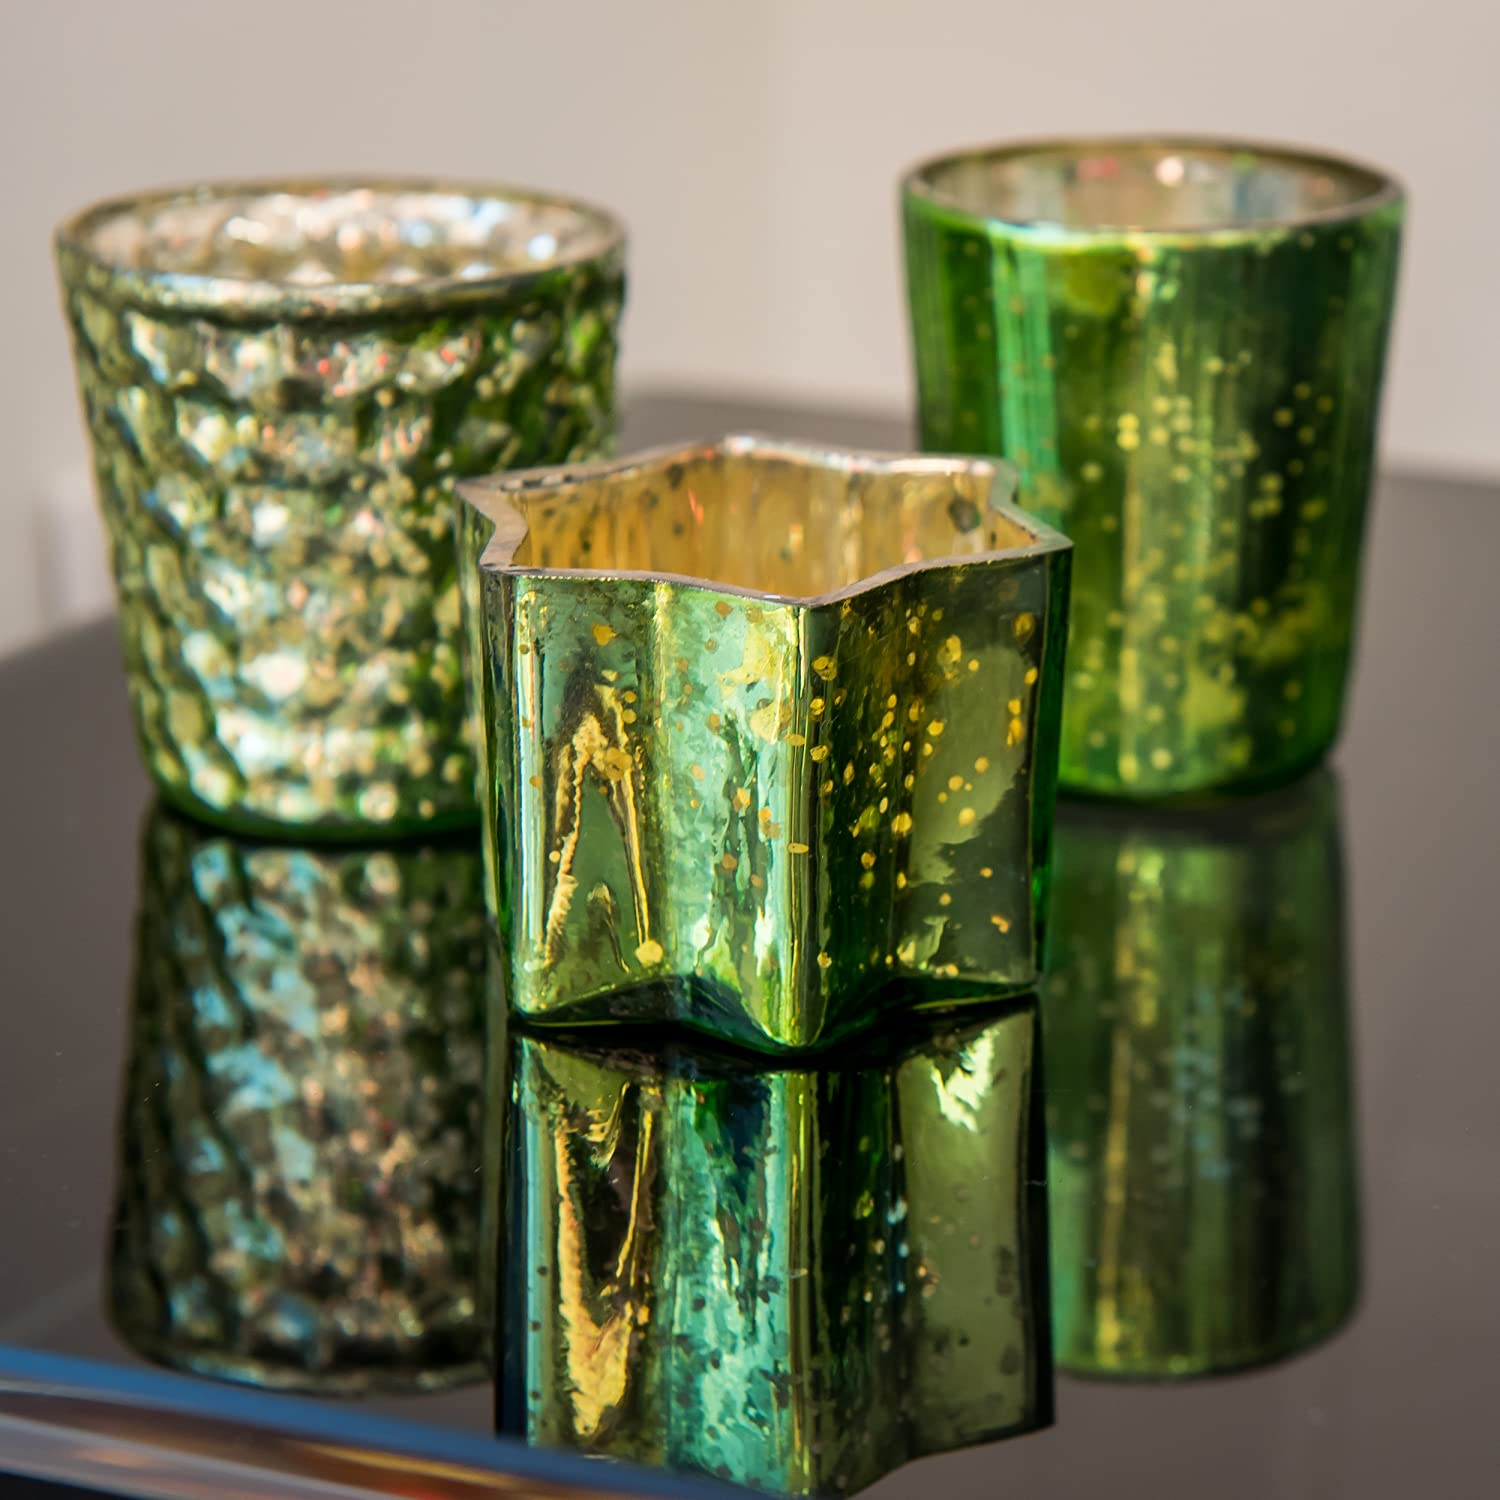 Vertical Insideretail Mercury Glass Tea Light Holders with Distressed Green Foil Set of 48 Insideretail Ltd 700452-9-48GRE 7cm